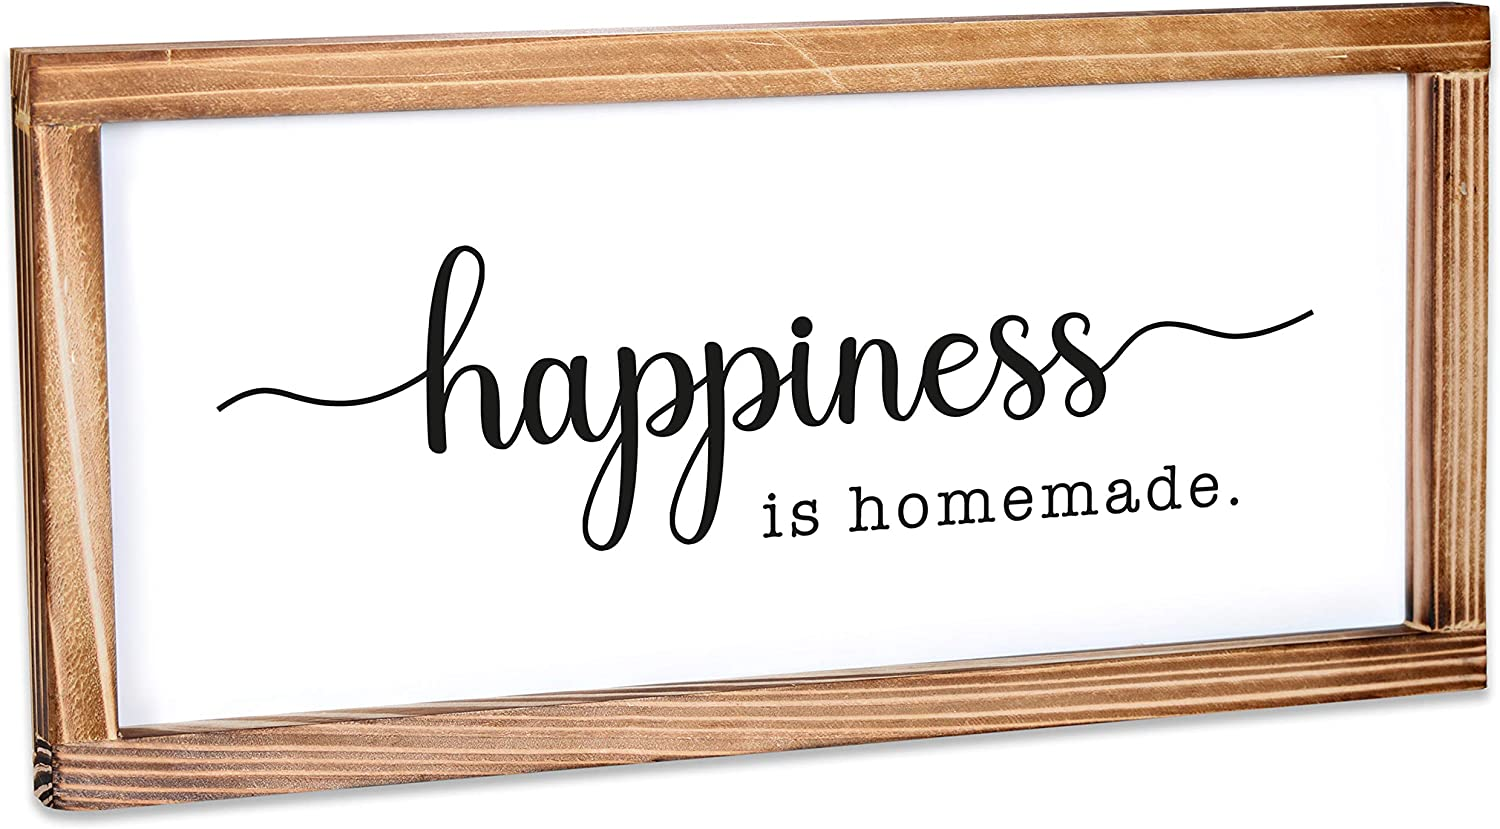 MAINEVENT Happiness is Homemade Sign - Rustic Farmhouse Decor for The Home Sign - Wall Decorations for Living Room, Modern Farmhouse Wall Decor, Rustic Home Decor with Solid Wood Frame - 8x17 Inch